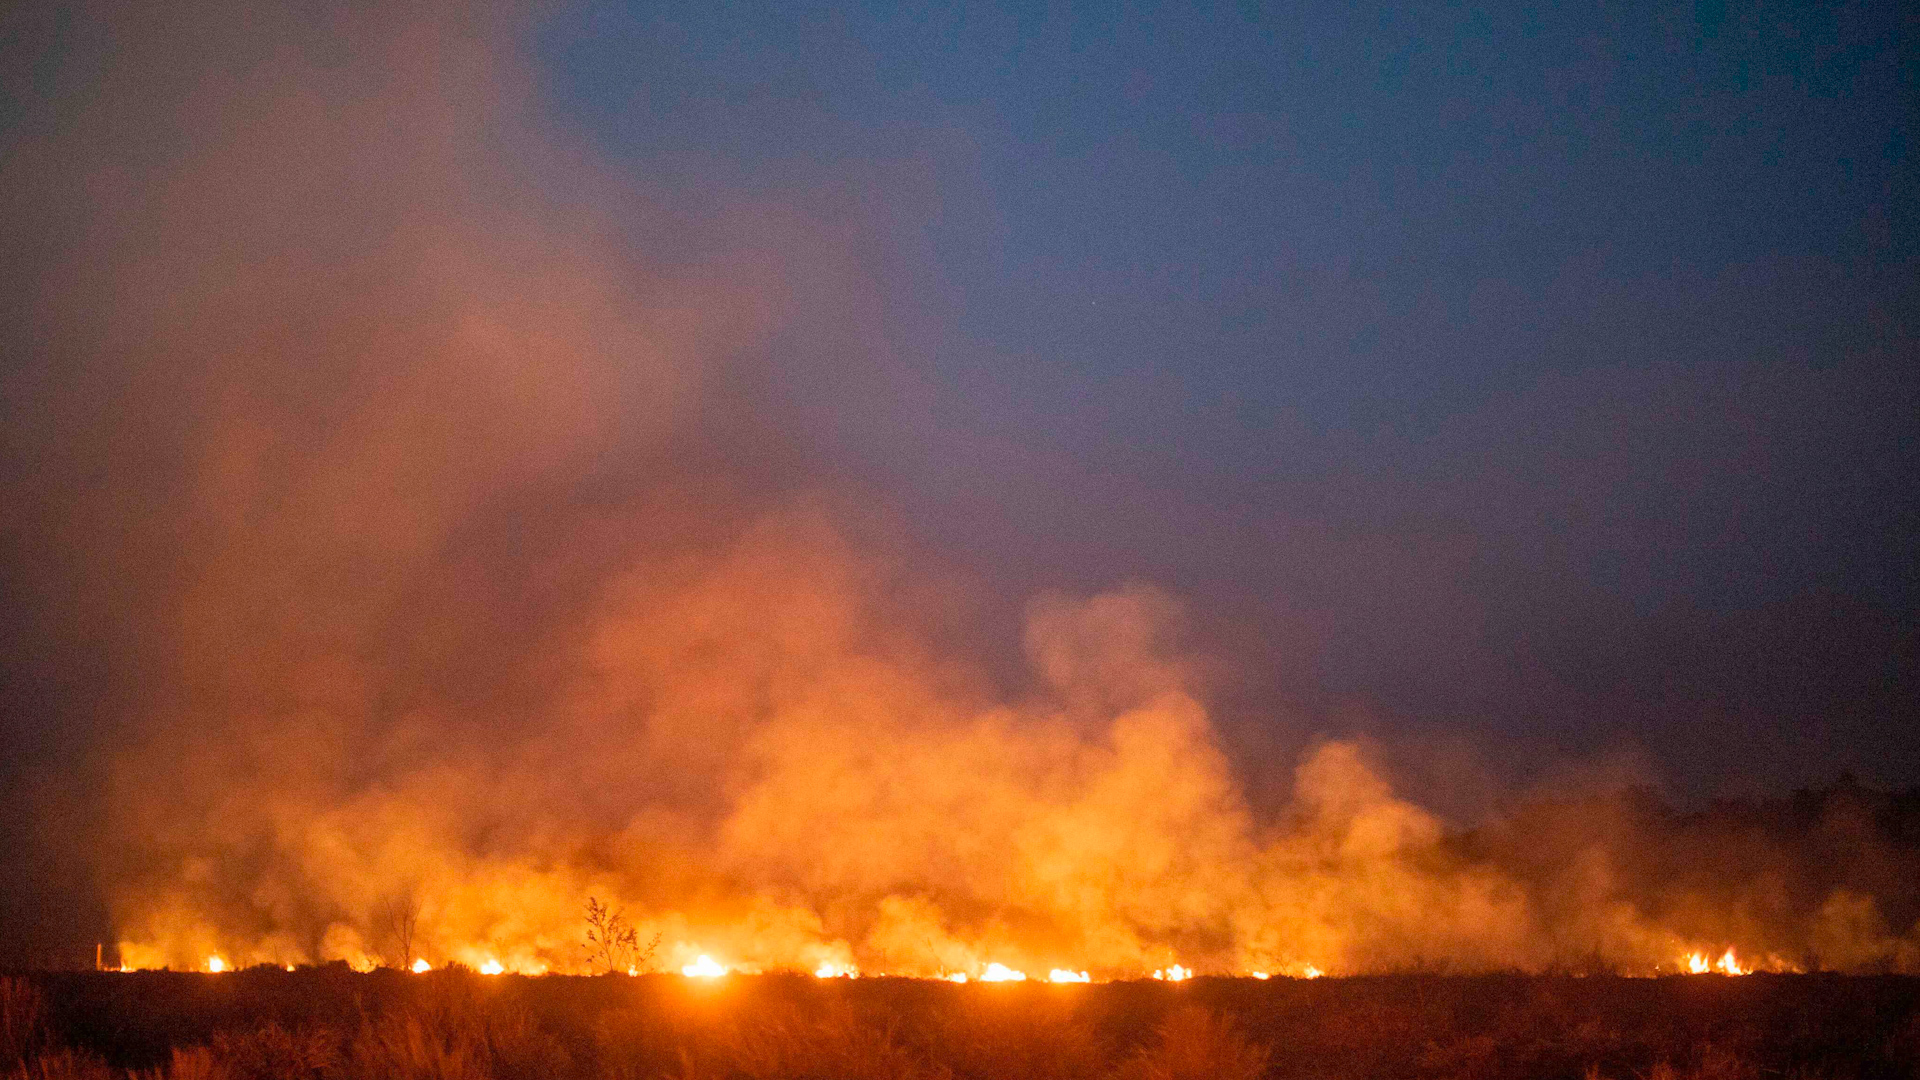 Brazilian Military Begins Operations To Fight Amazon Fires